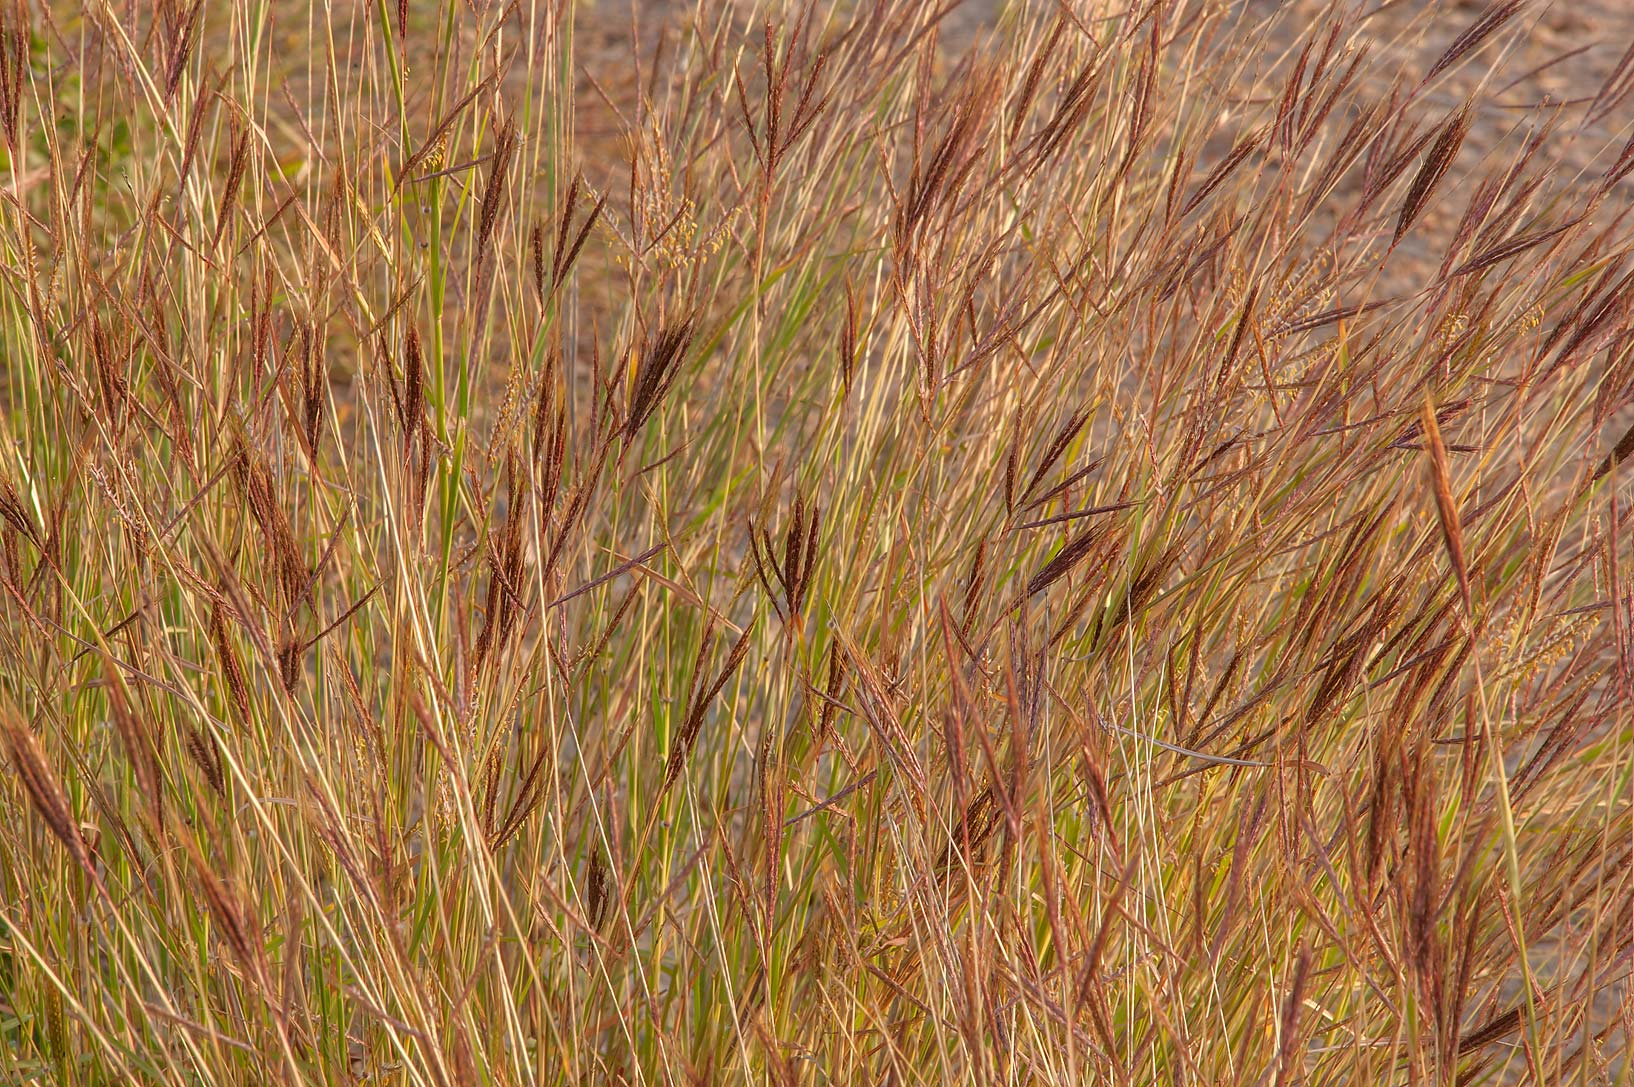 Hindi grass (Diaz bluestem, Dichanthium annulatum...of Al Magdah farms. Northern Qatar